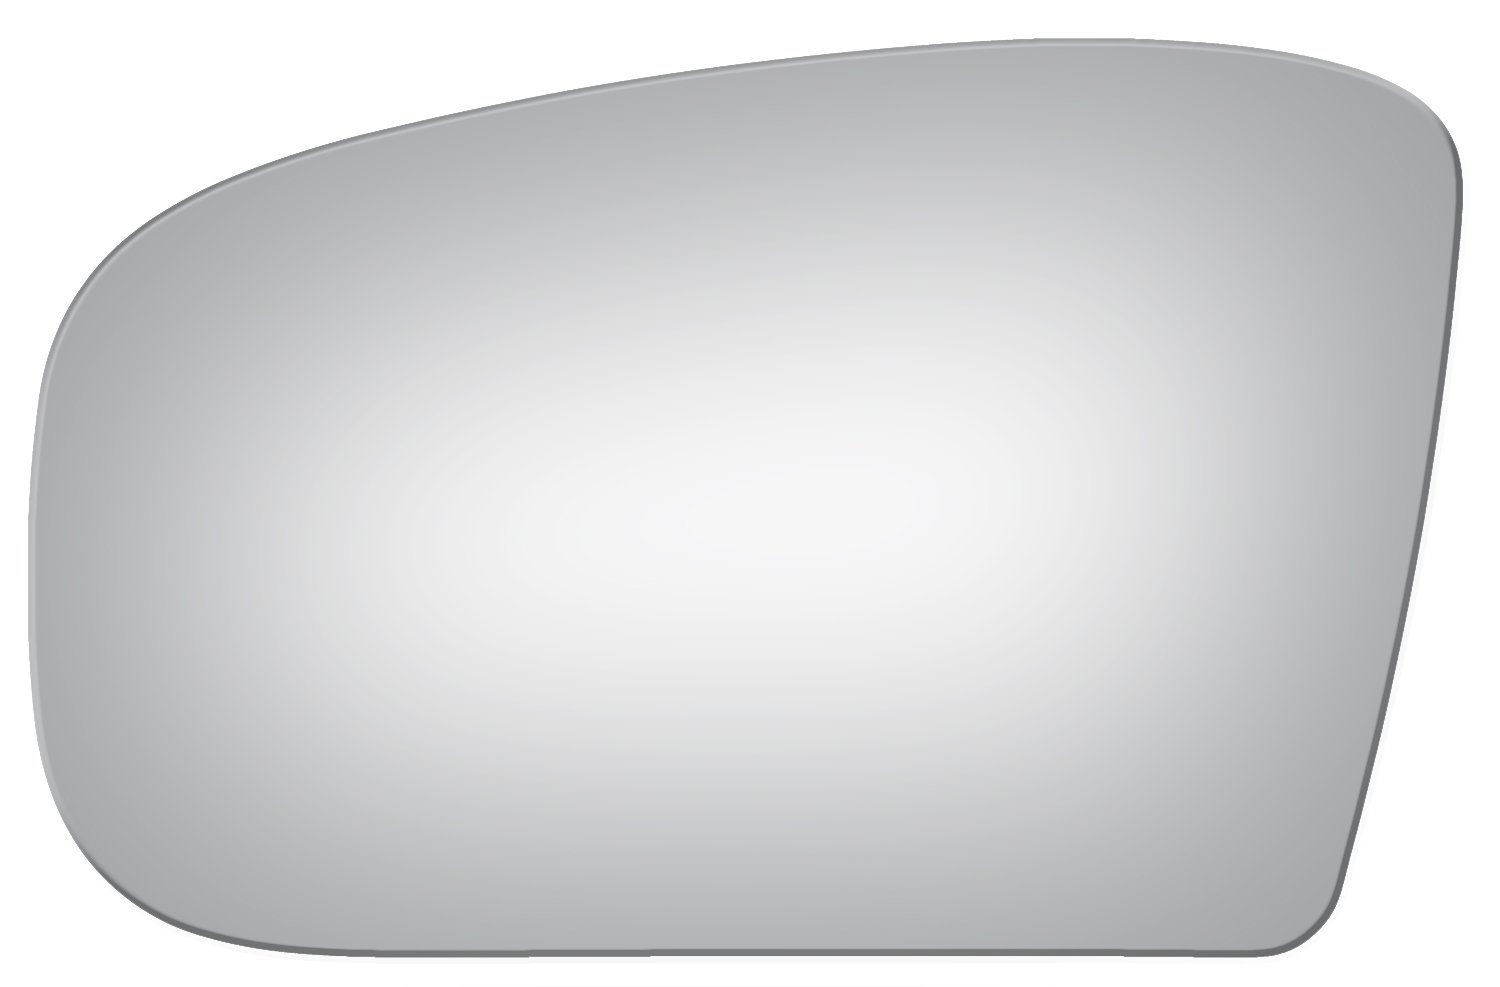 Burco 4004 Flat Driver Side Power Replacement Mirror Glass for Mercedes-Benz CL500, CL55 AMG, CL600, CL65 AMG, S350, S430, S500, S55 AMG, S600, S65 AMG (2000, 2001, 2002, 2003, 2004, 2005, 2006)